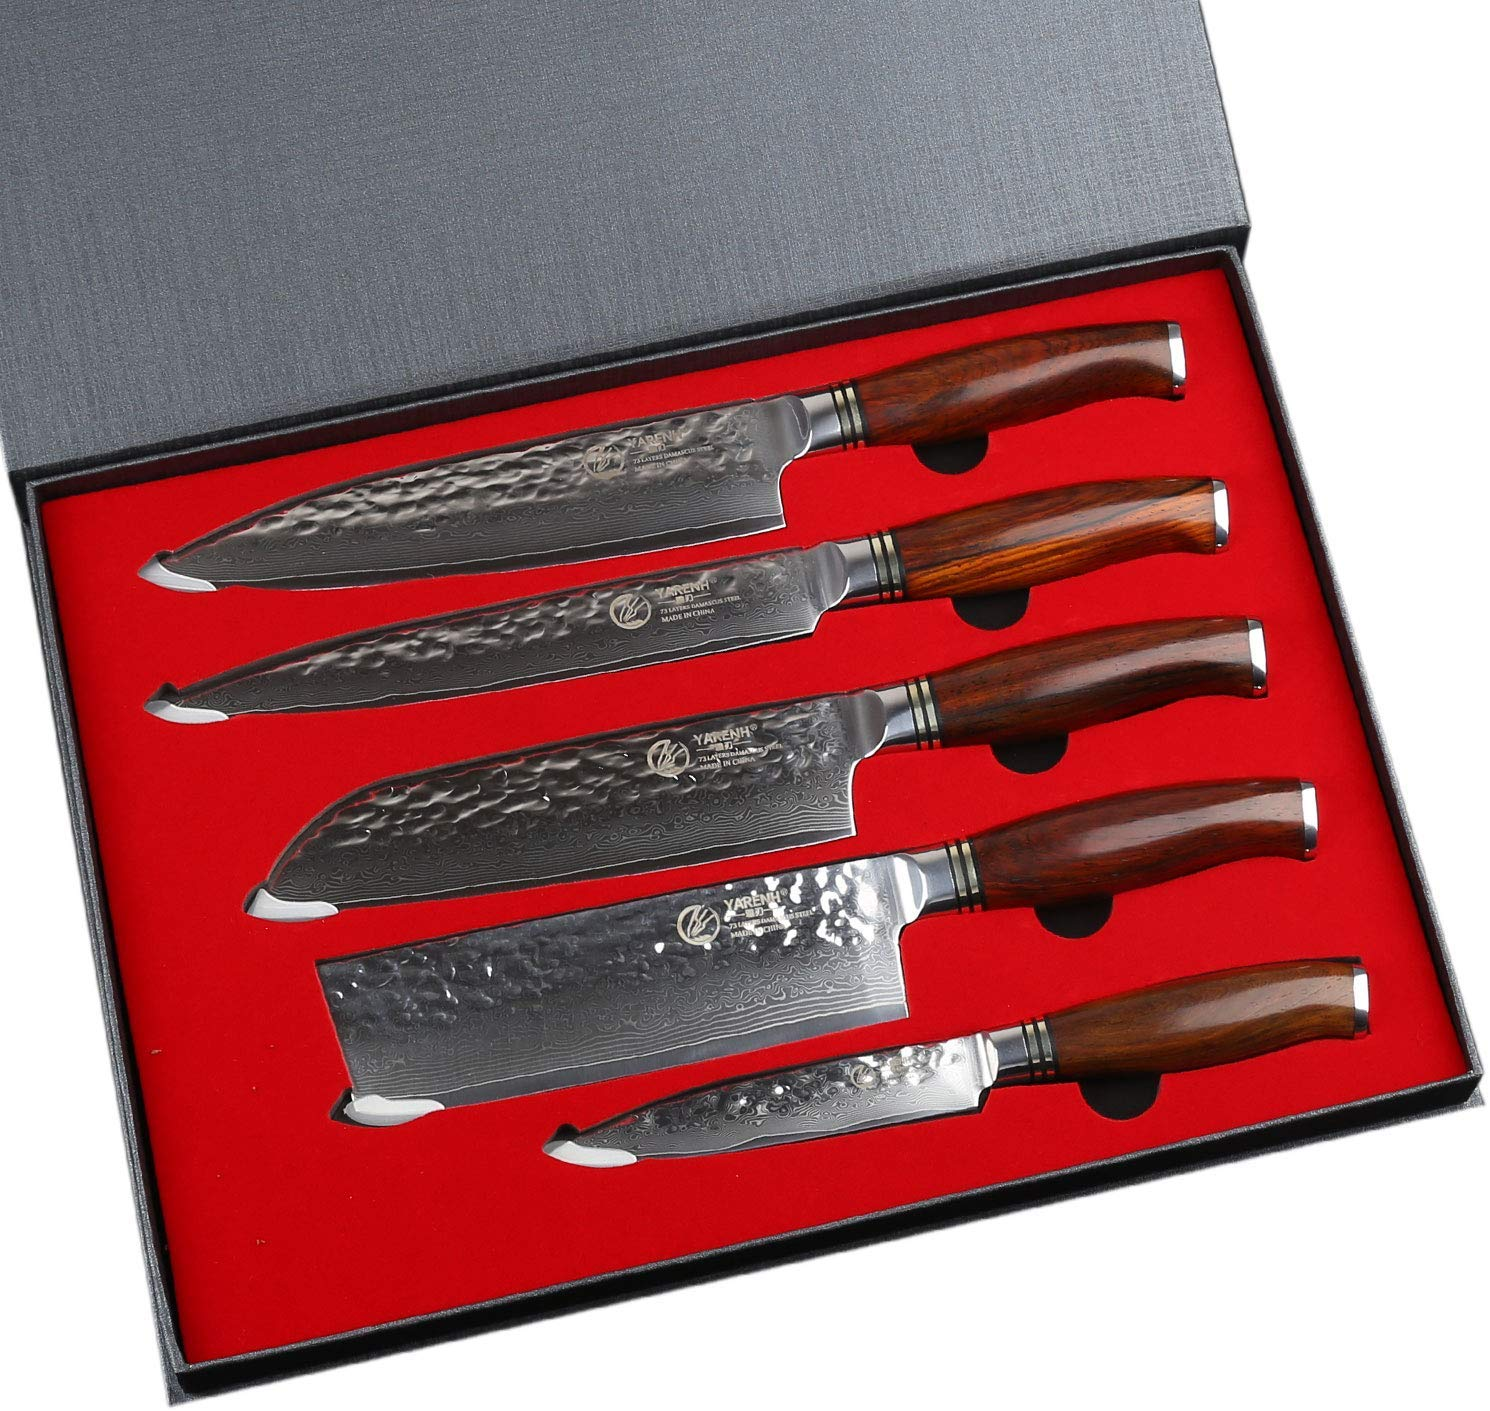 YARENH Kitchen Knife Set Professional 5 Piece Chef Knife Set - Damascus Stainless Steel - Galbergia Wood Handle,Gift Box Packaging,Sharp Vegetable Knives Sets HTT-Series